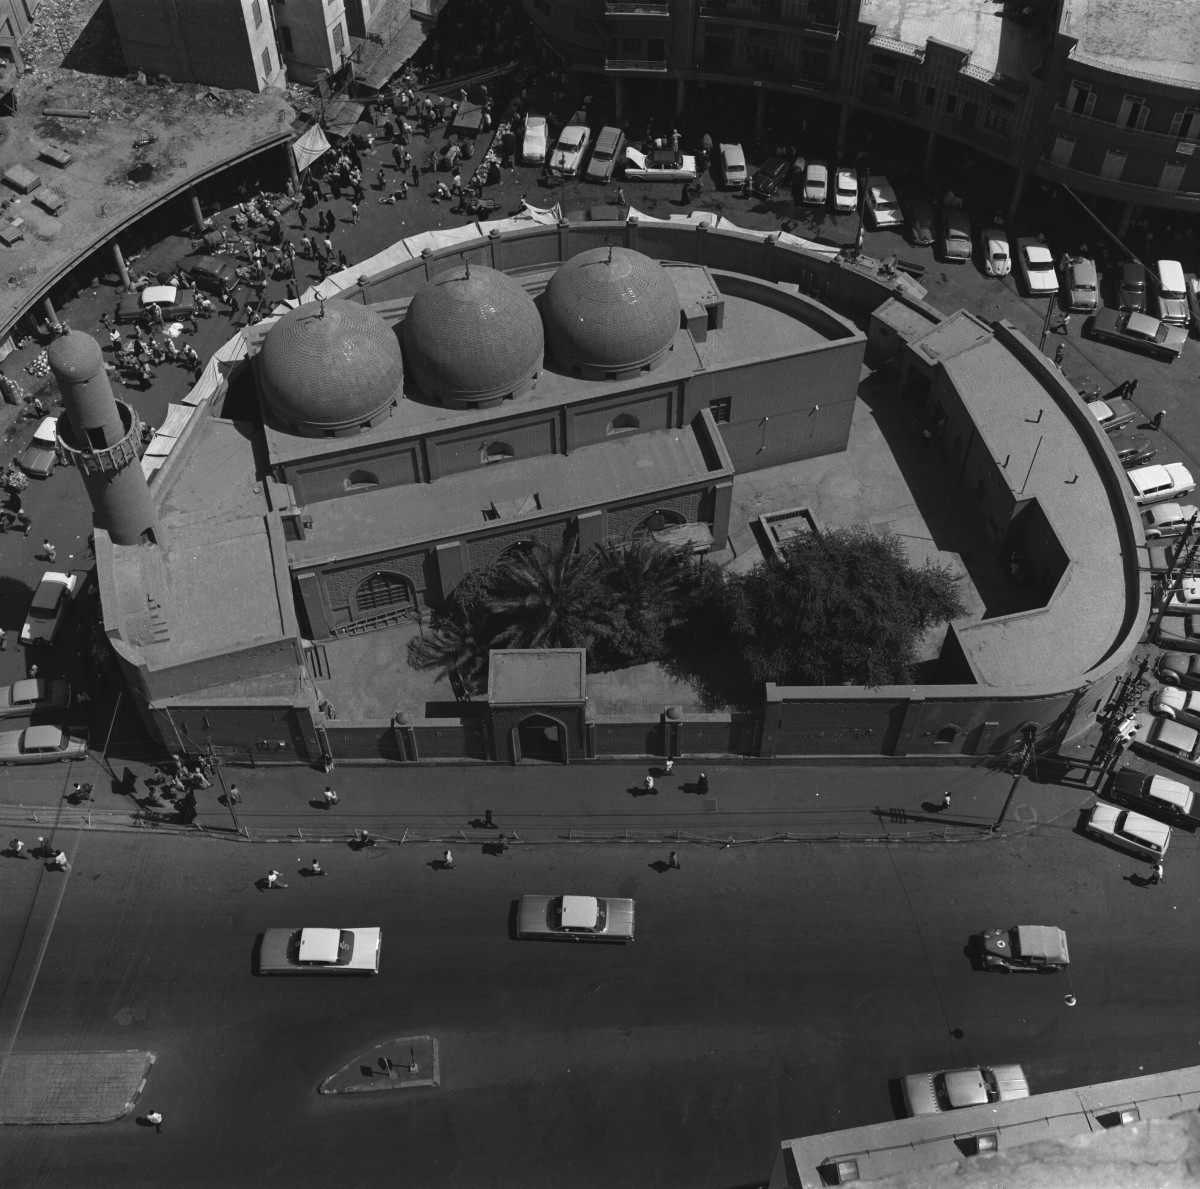 Mirjan Mosque, 1960. Courtesy of the artist and Arab Image Foundation.